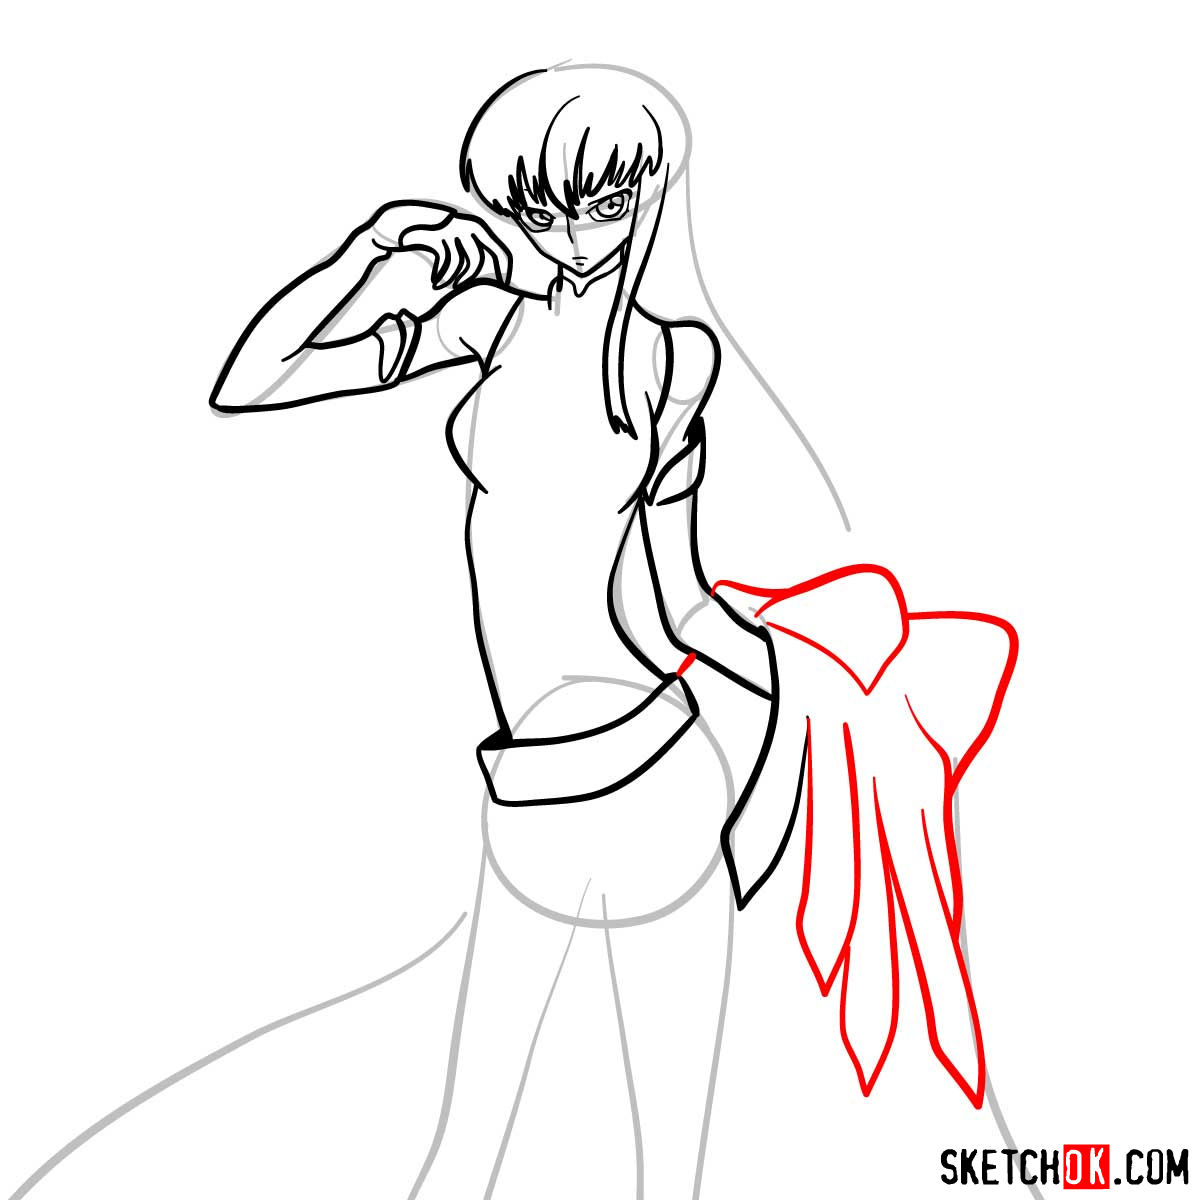 16 steps drawing guide of C.C. from Code Geass anime - step 11